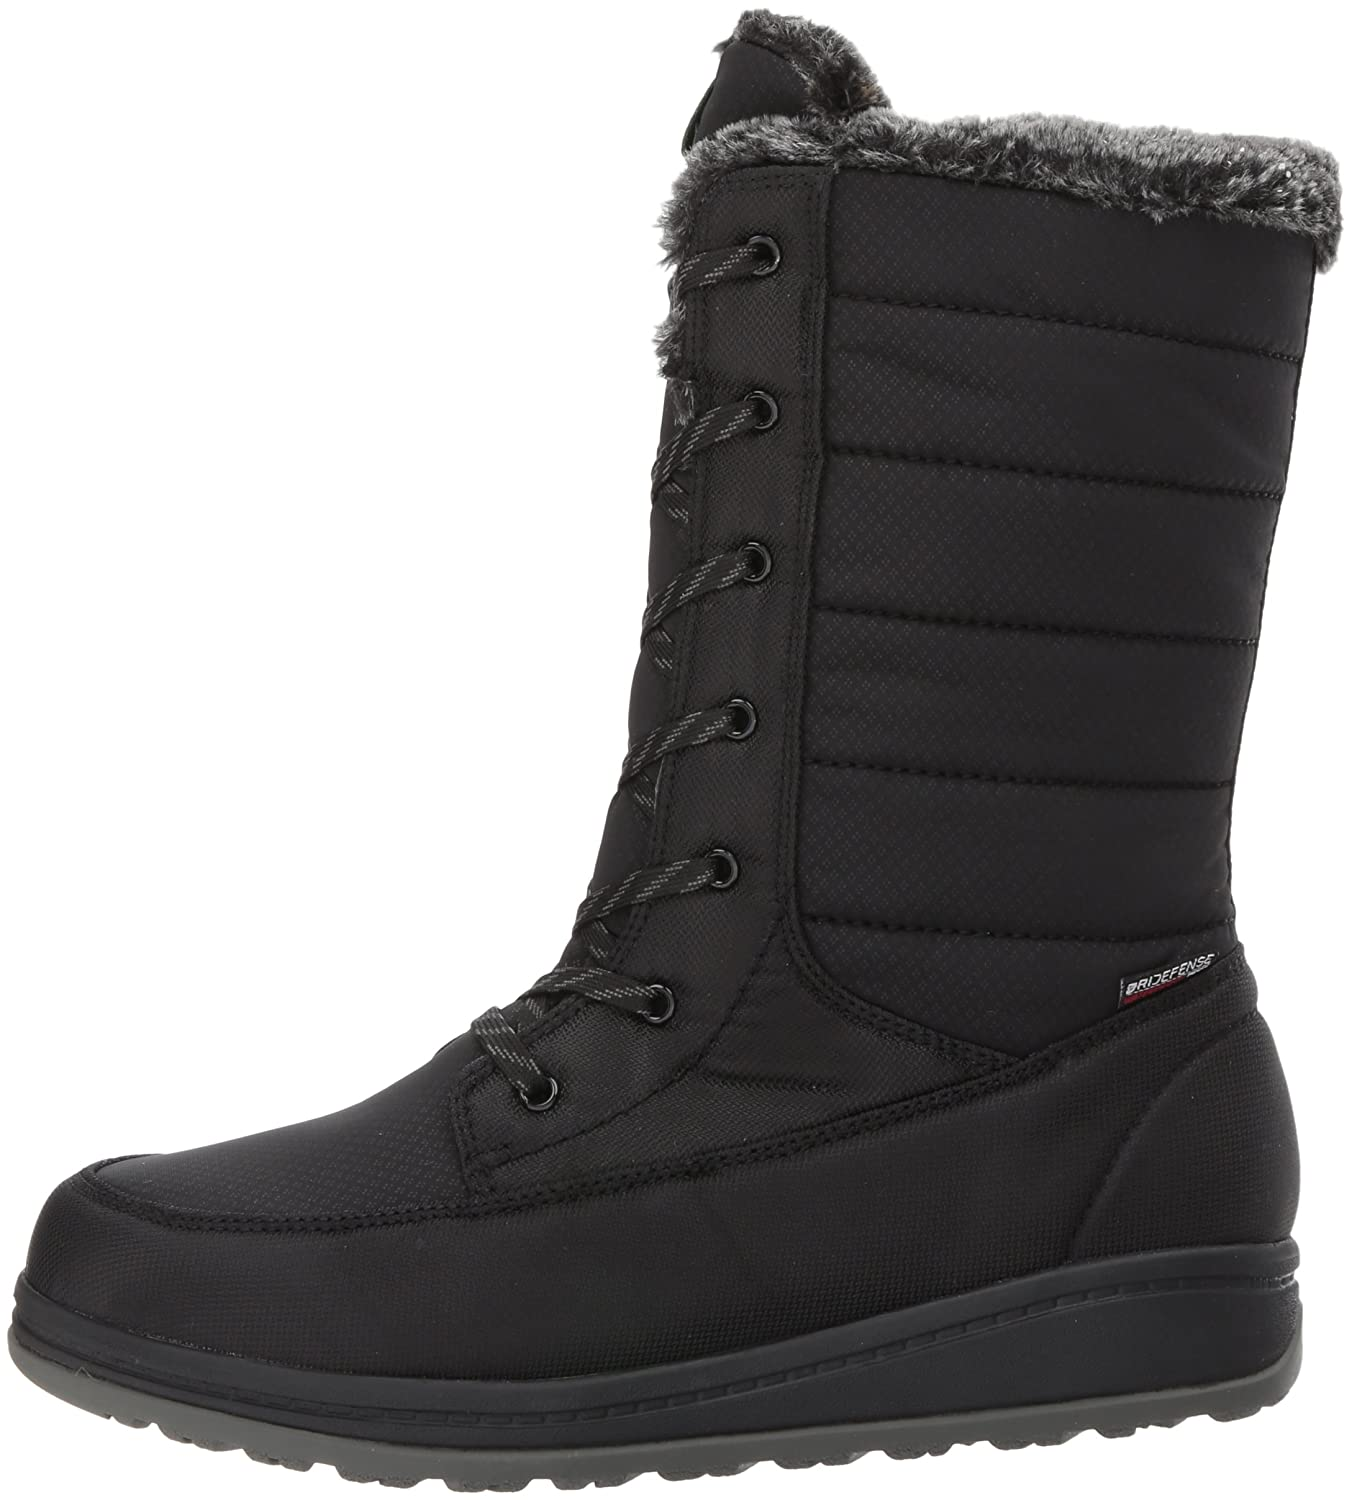 Kamik Women's Bailee Snow Boot B01N6LWW22 5 D US|Black